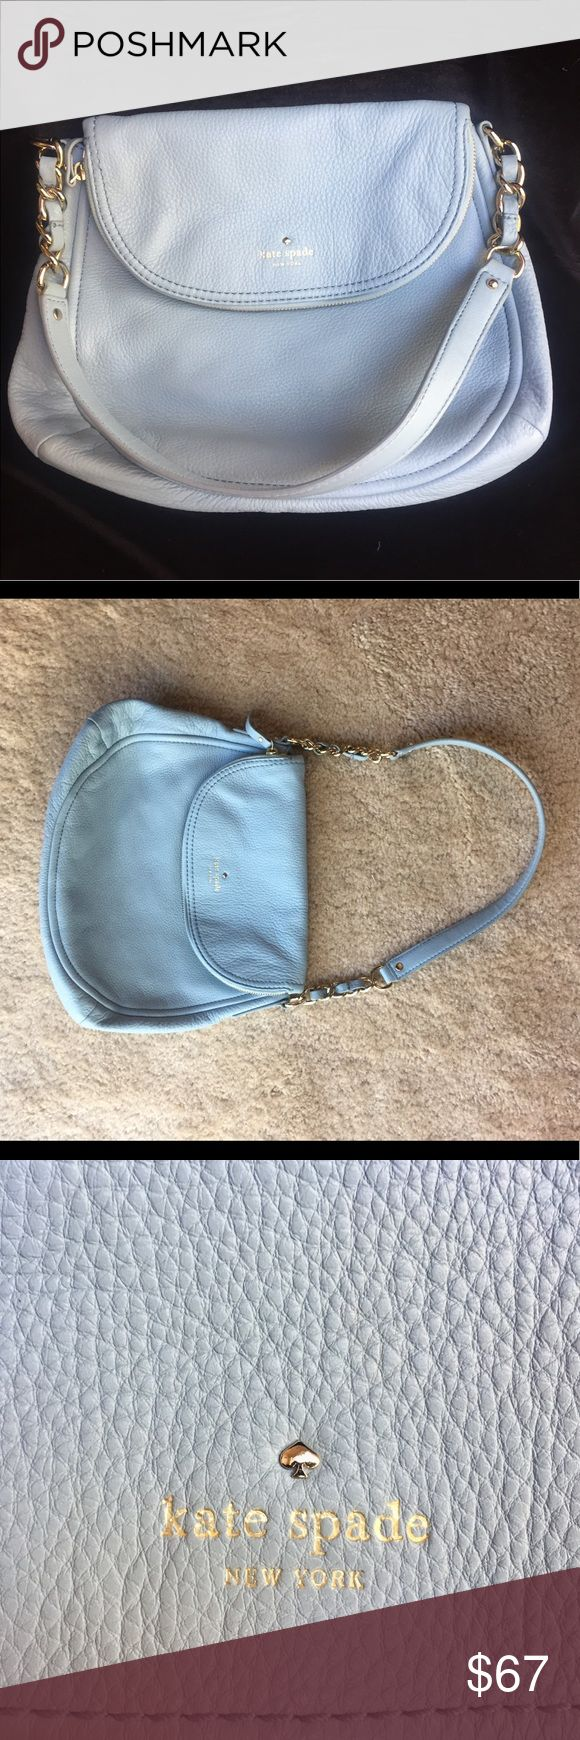 💎Something Blue💎 Kate Spade Handbag Beautiful Cyblue Aqua handbag, purse. Excellent gently used condition. No stains, scuffs, or marks. Kept in cloth dust bag, which comes with the purse. Originally purchased at Nordstrom Rack. Make an offer! kate spade Bags Shoulder Bags